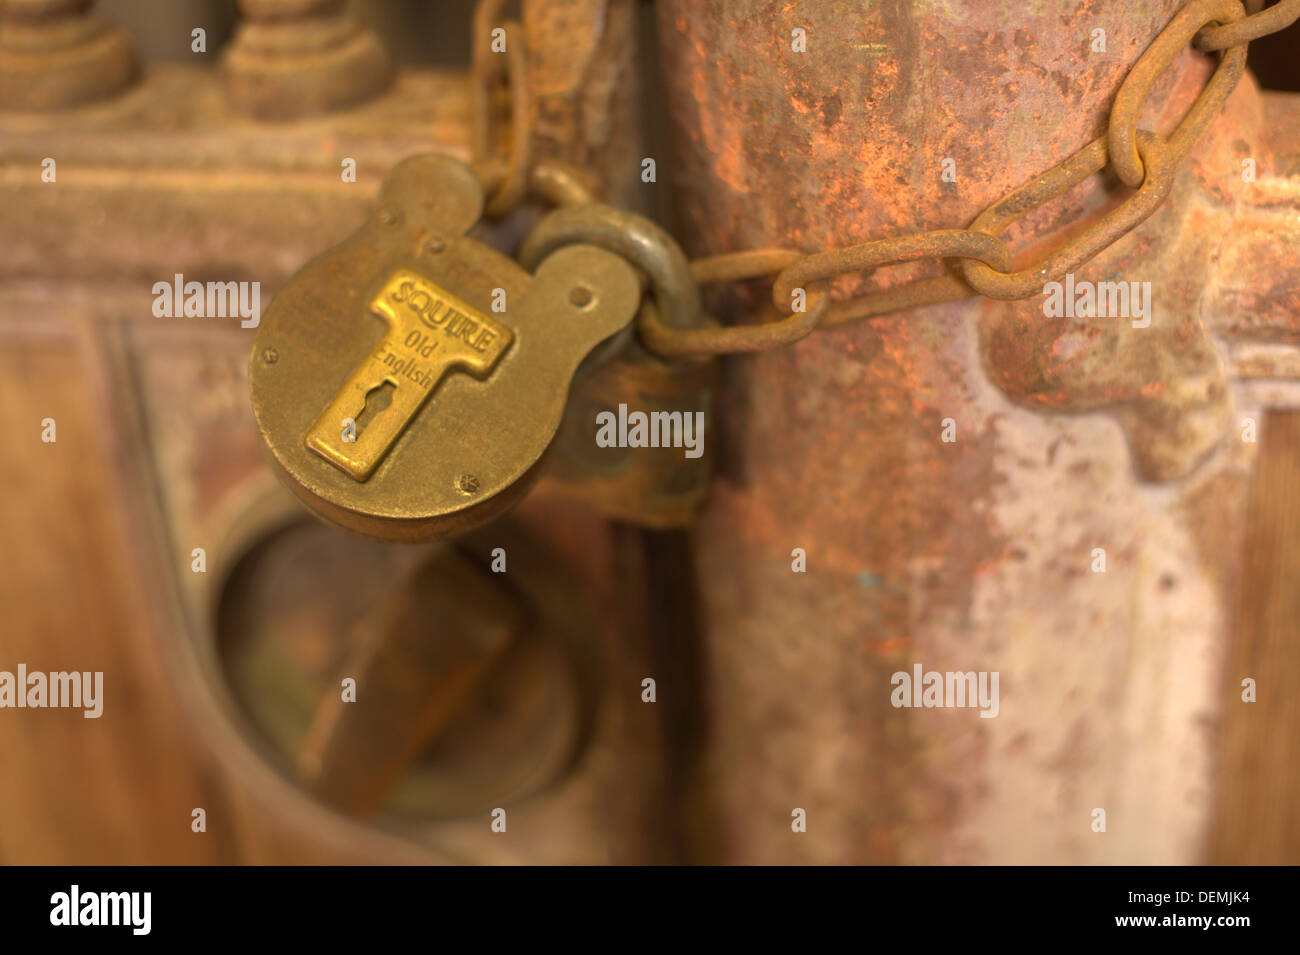 Squire padlock and chain - Stock Image